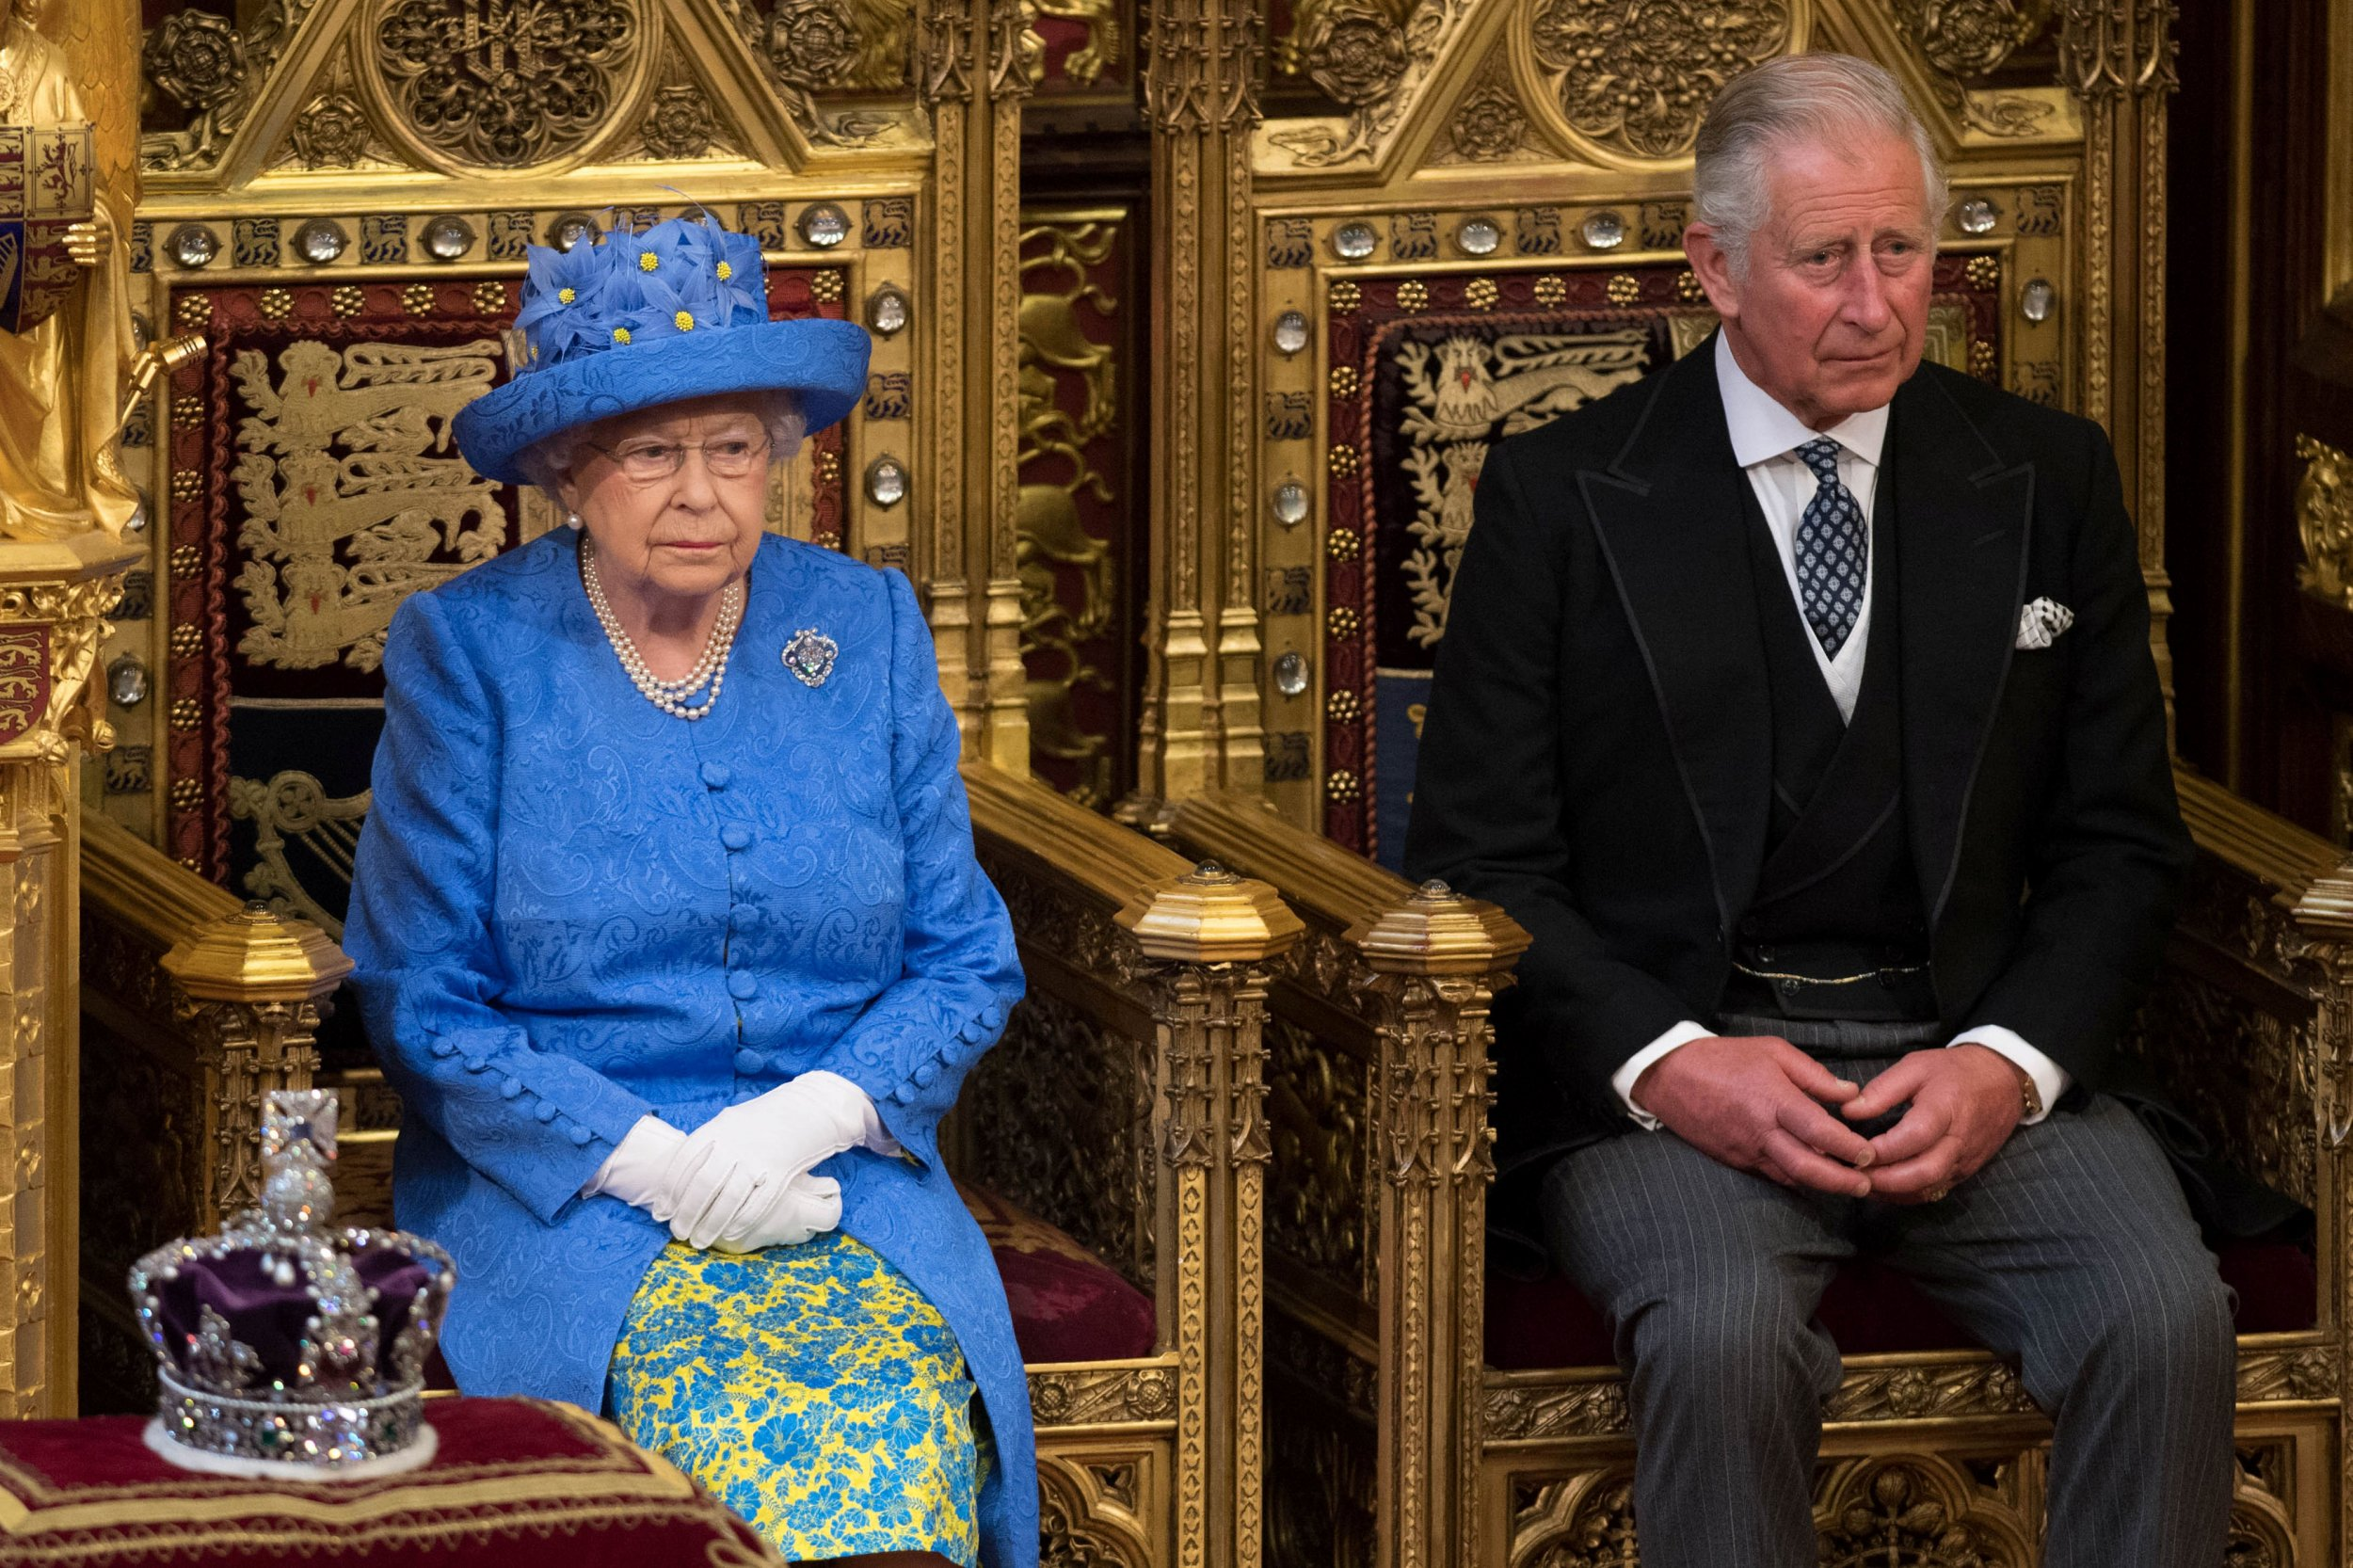 Queen Elizabeth II with heir apparent Prince Charles